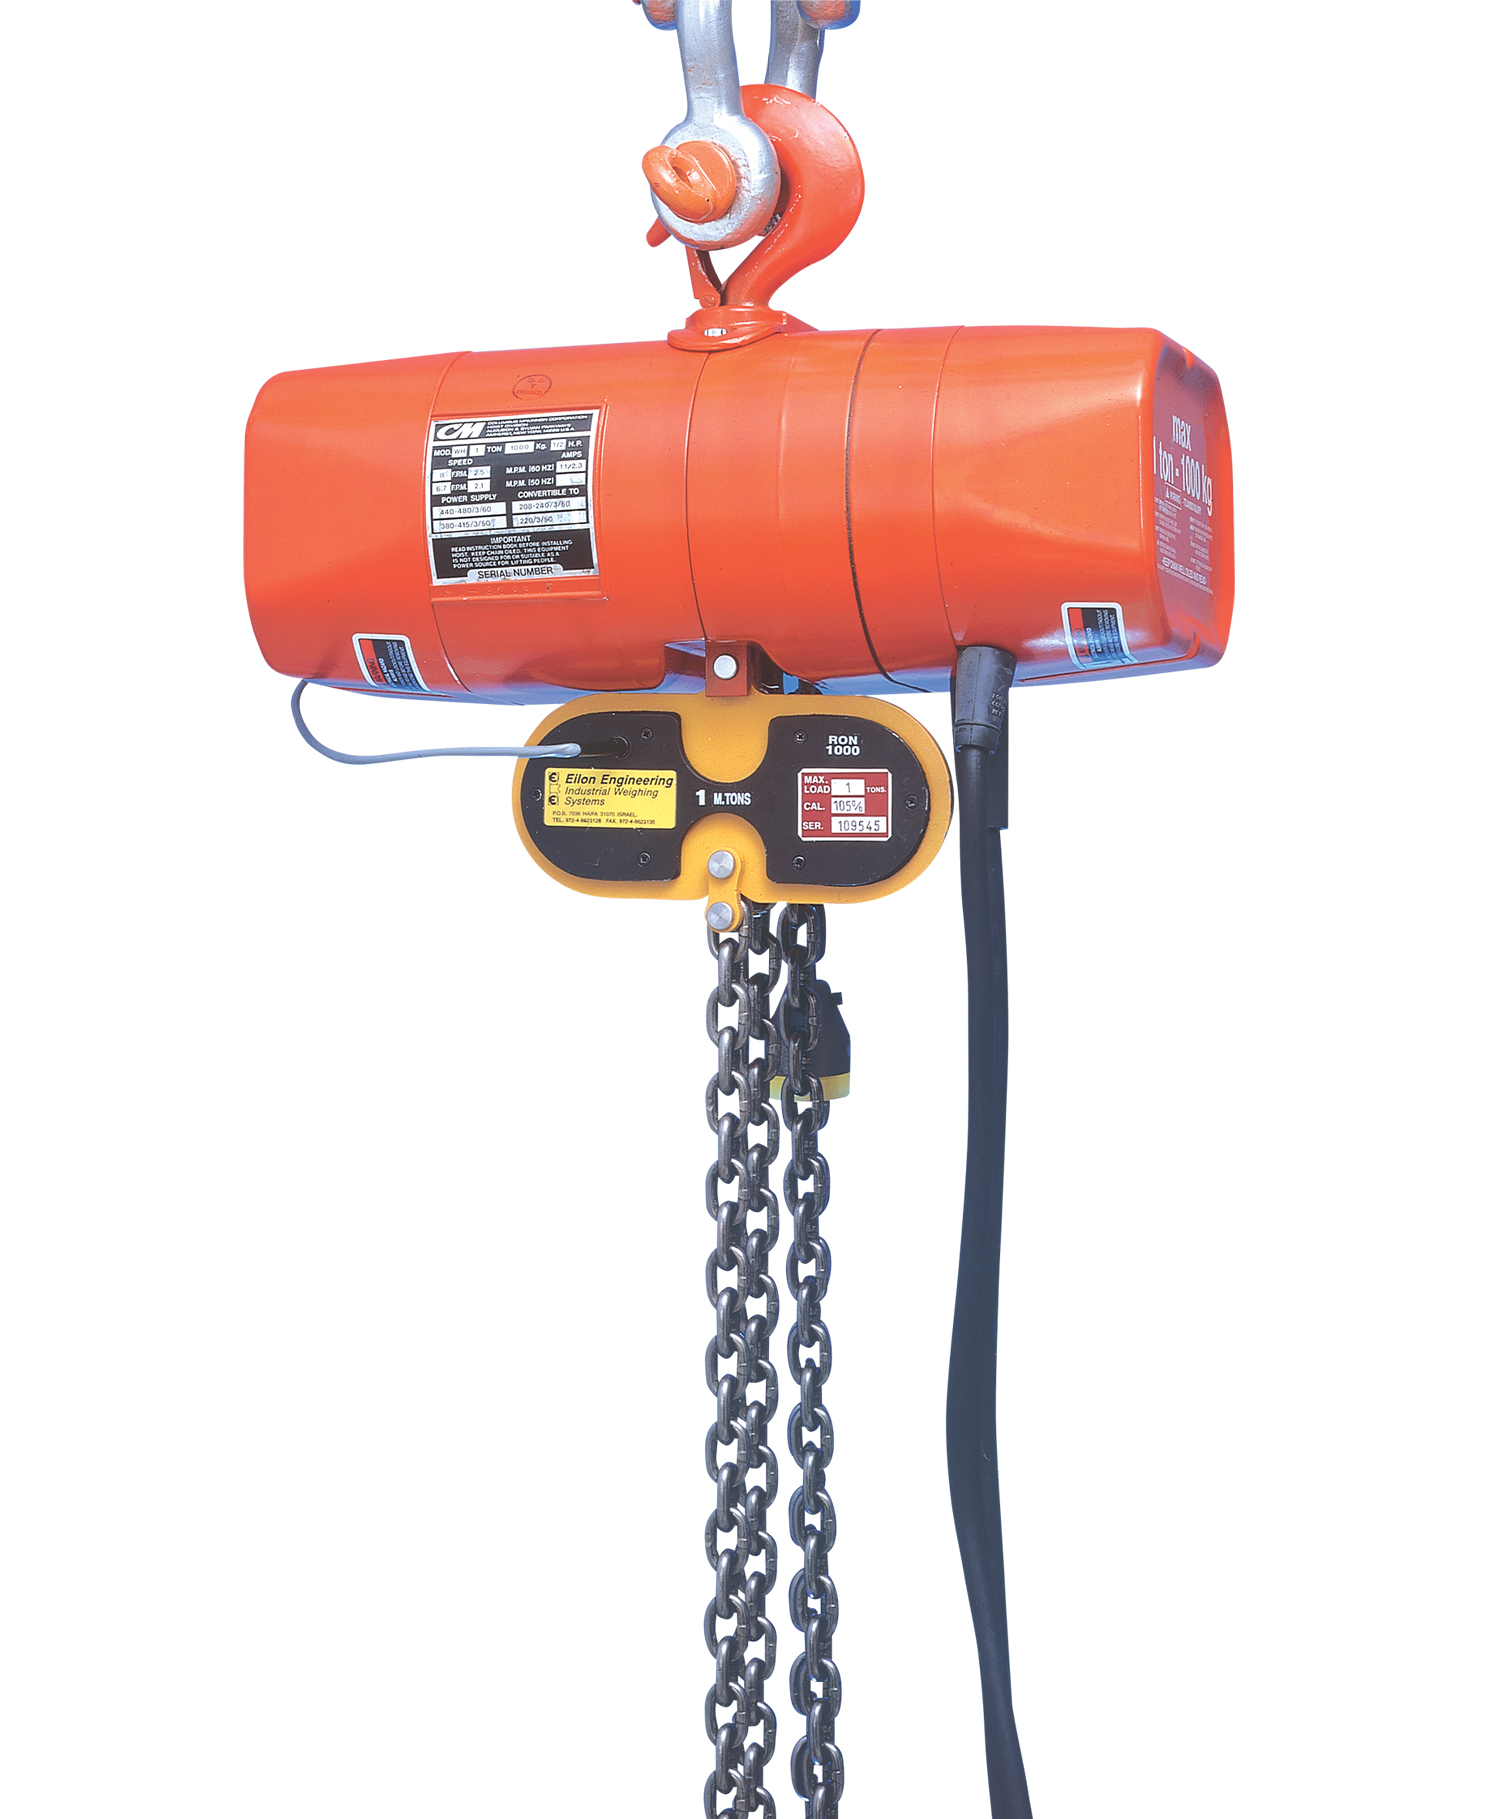 Overload detector for chain installation